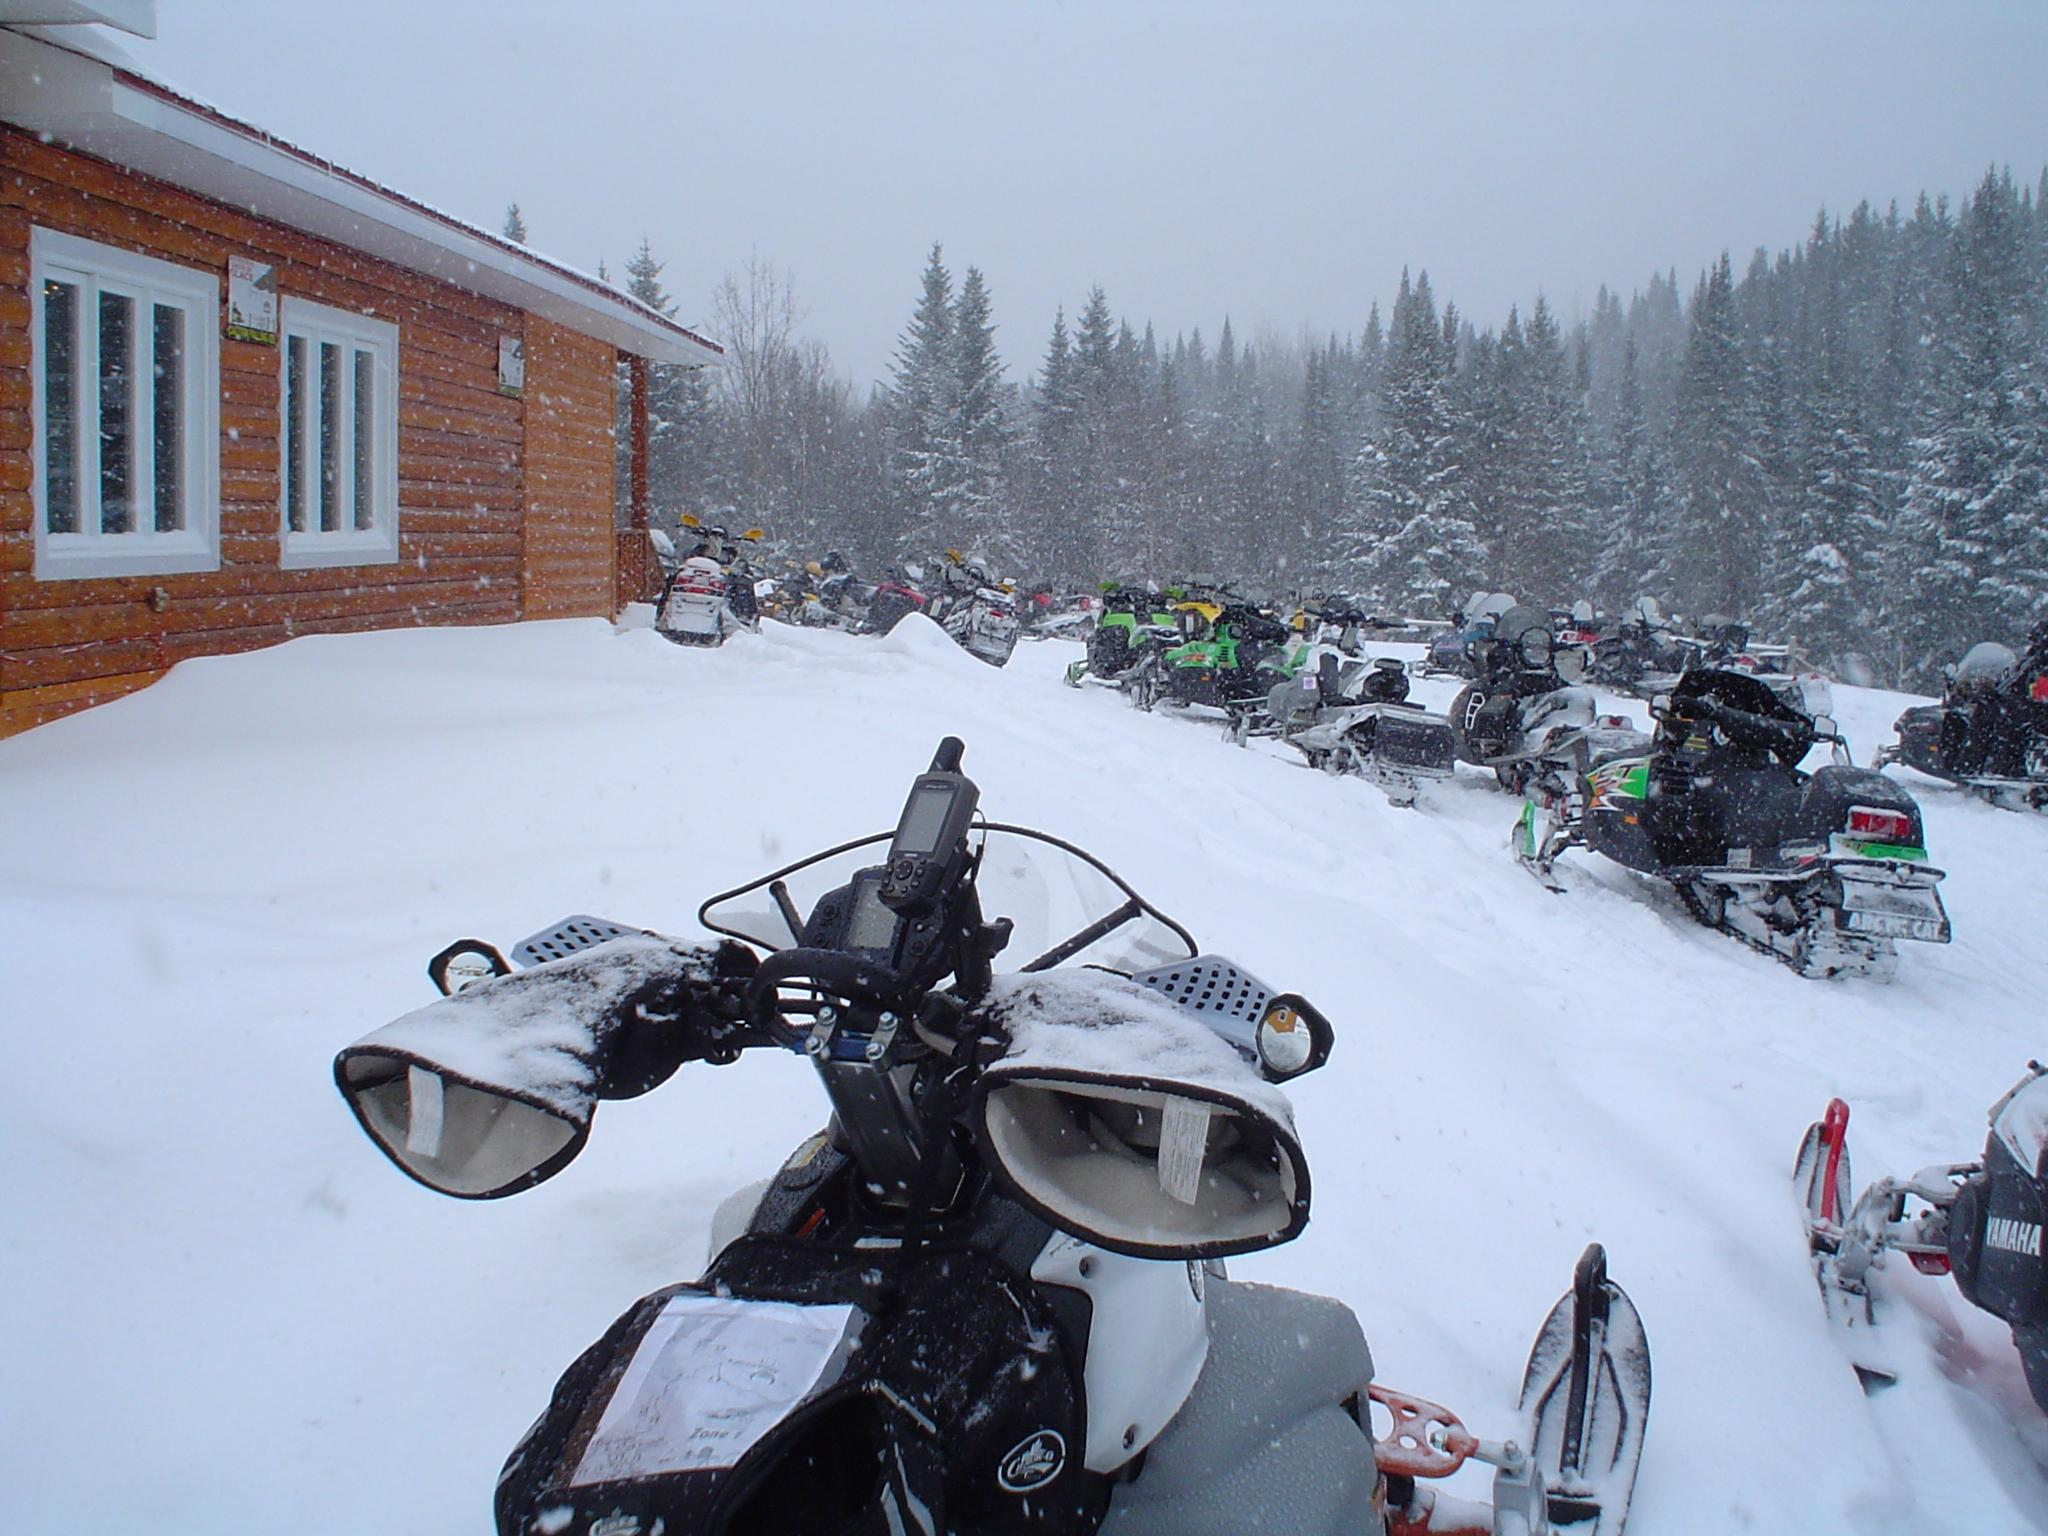 Skidoo Gps And Mount Photos Articles 2014 Ski Doo Snowmobile Headlight Wiring Diagram Saturday Morning Star From Kamouraska Qc Direction To Moose Valley Nb A Loop At Edmundston Return For Is First Test 535 Km In